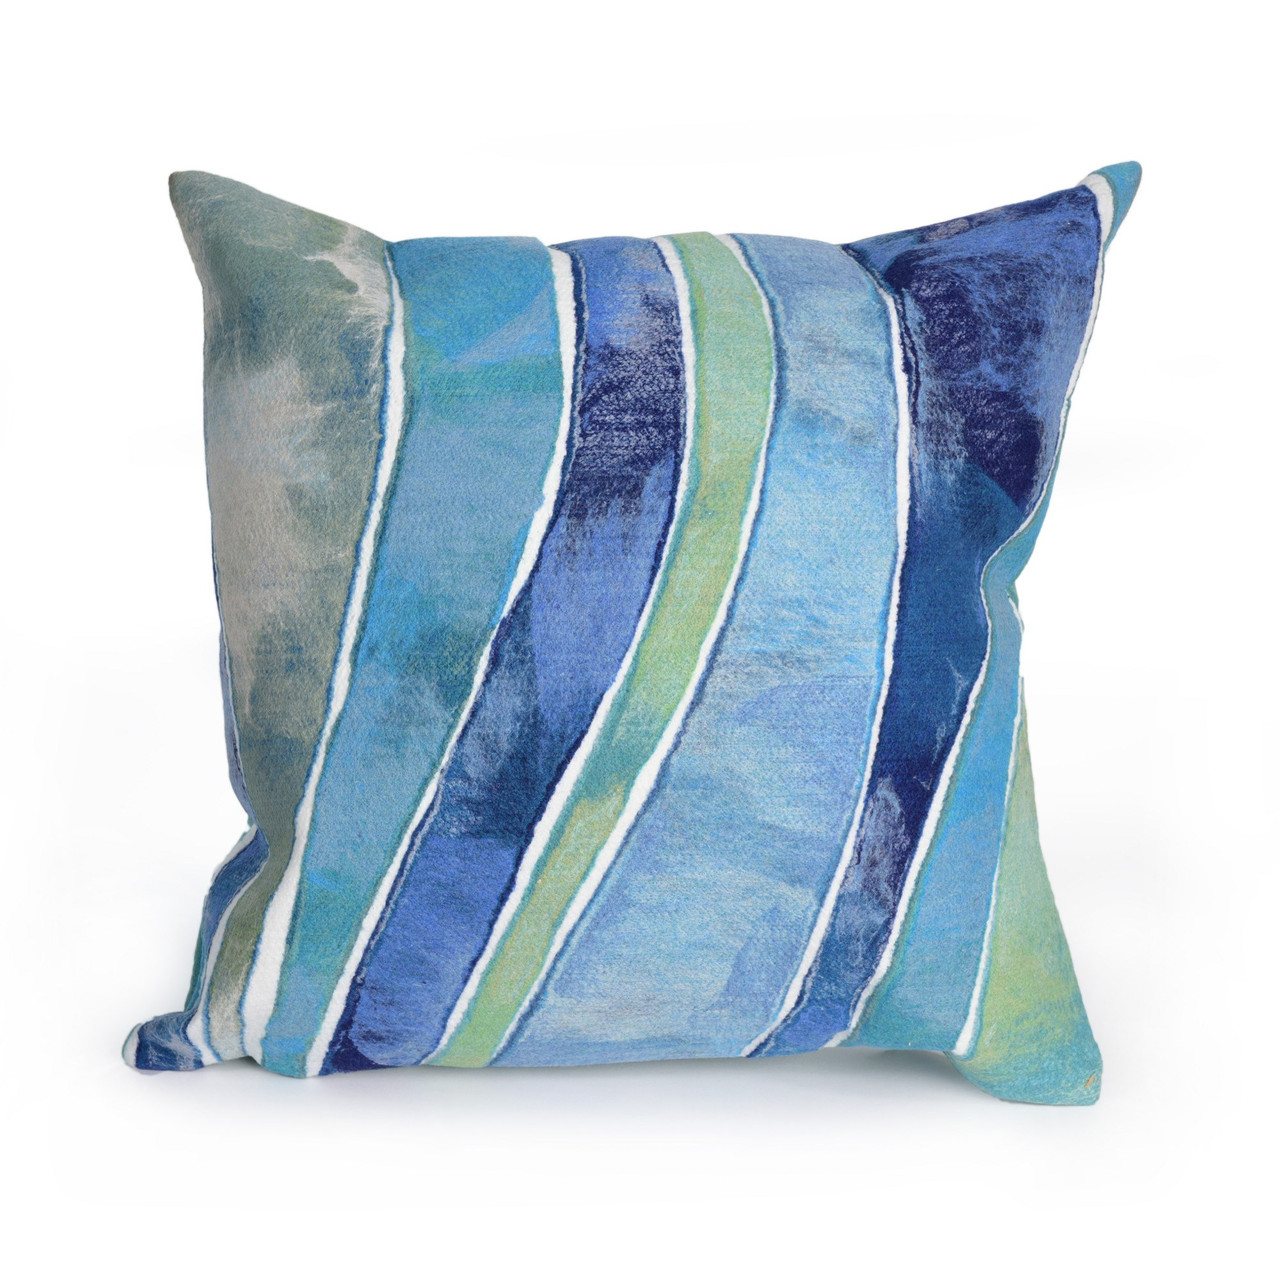 Visions II Ocean Waves Indoor/Outdoor Throw Pillows - 2 Sizes Avail